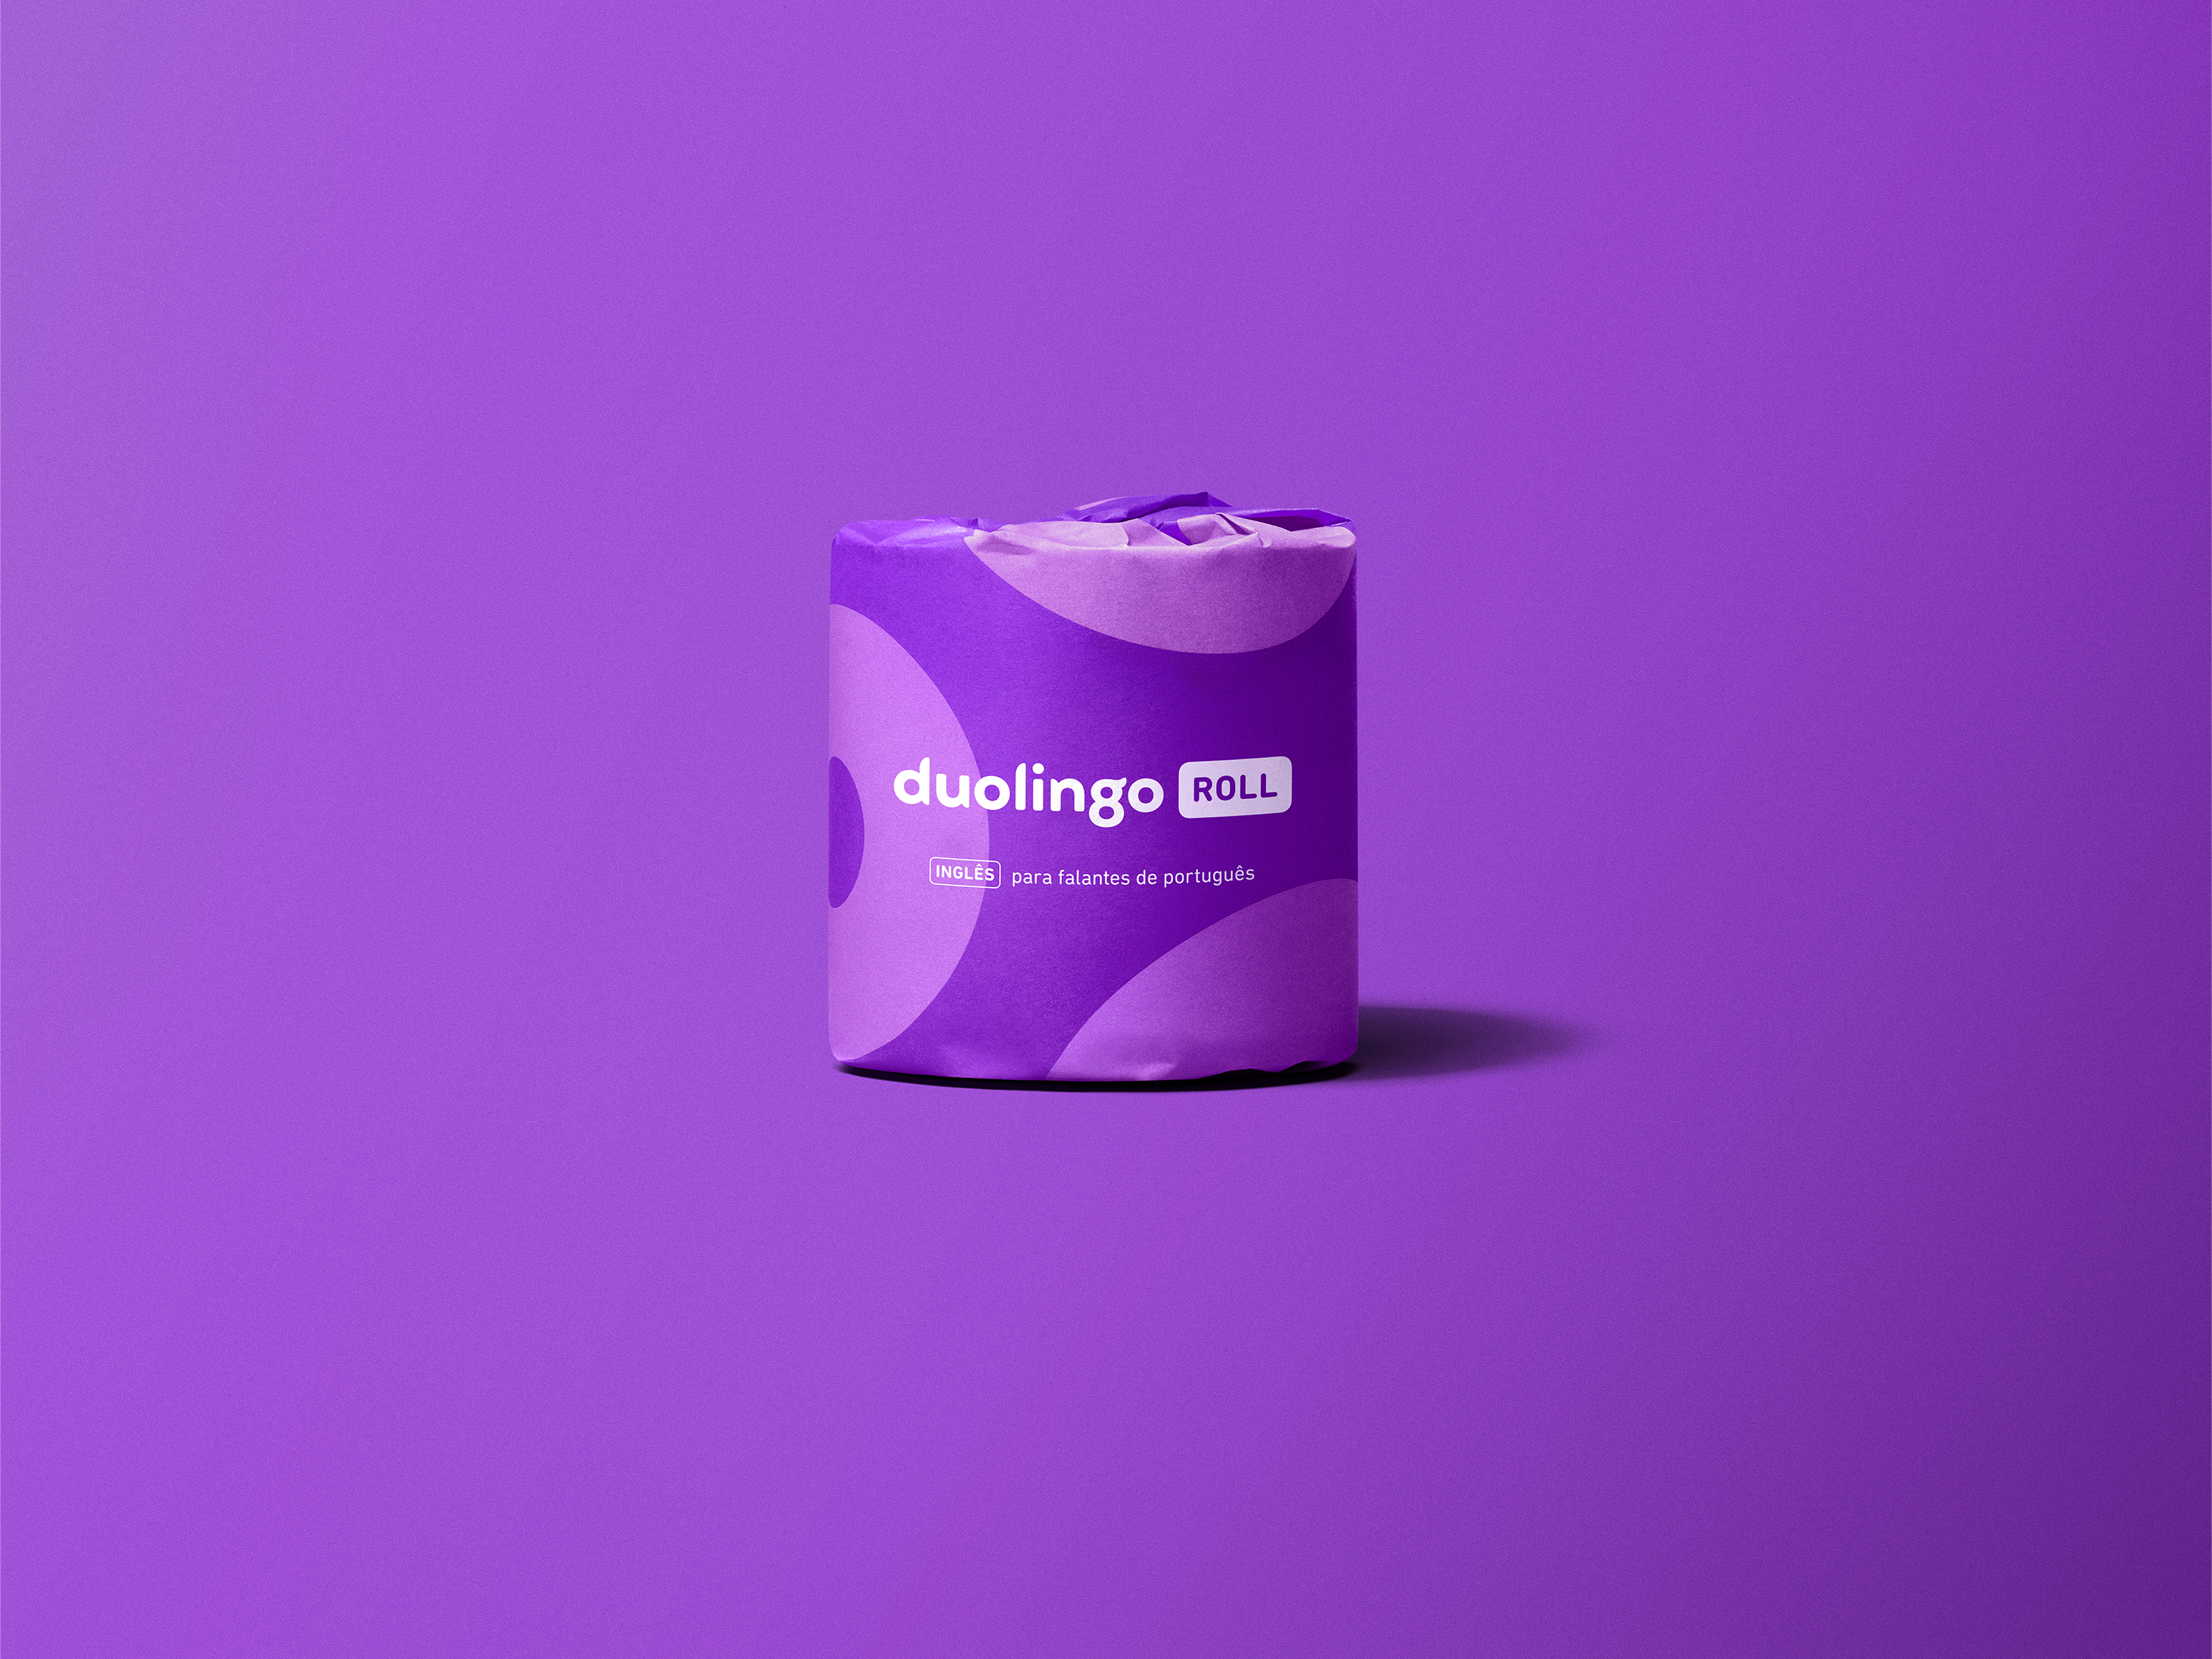 Duolingo Roll in-hand for Portuguese speakers